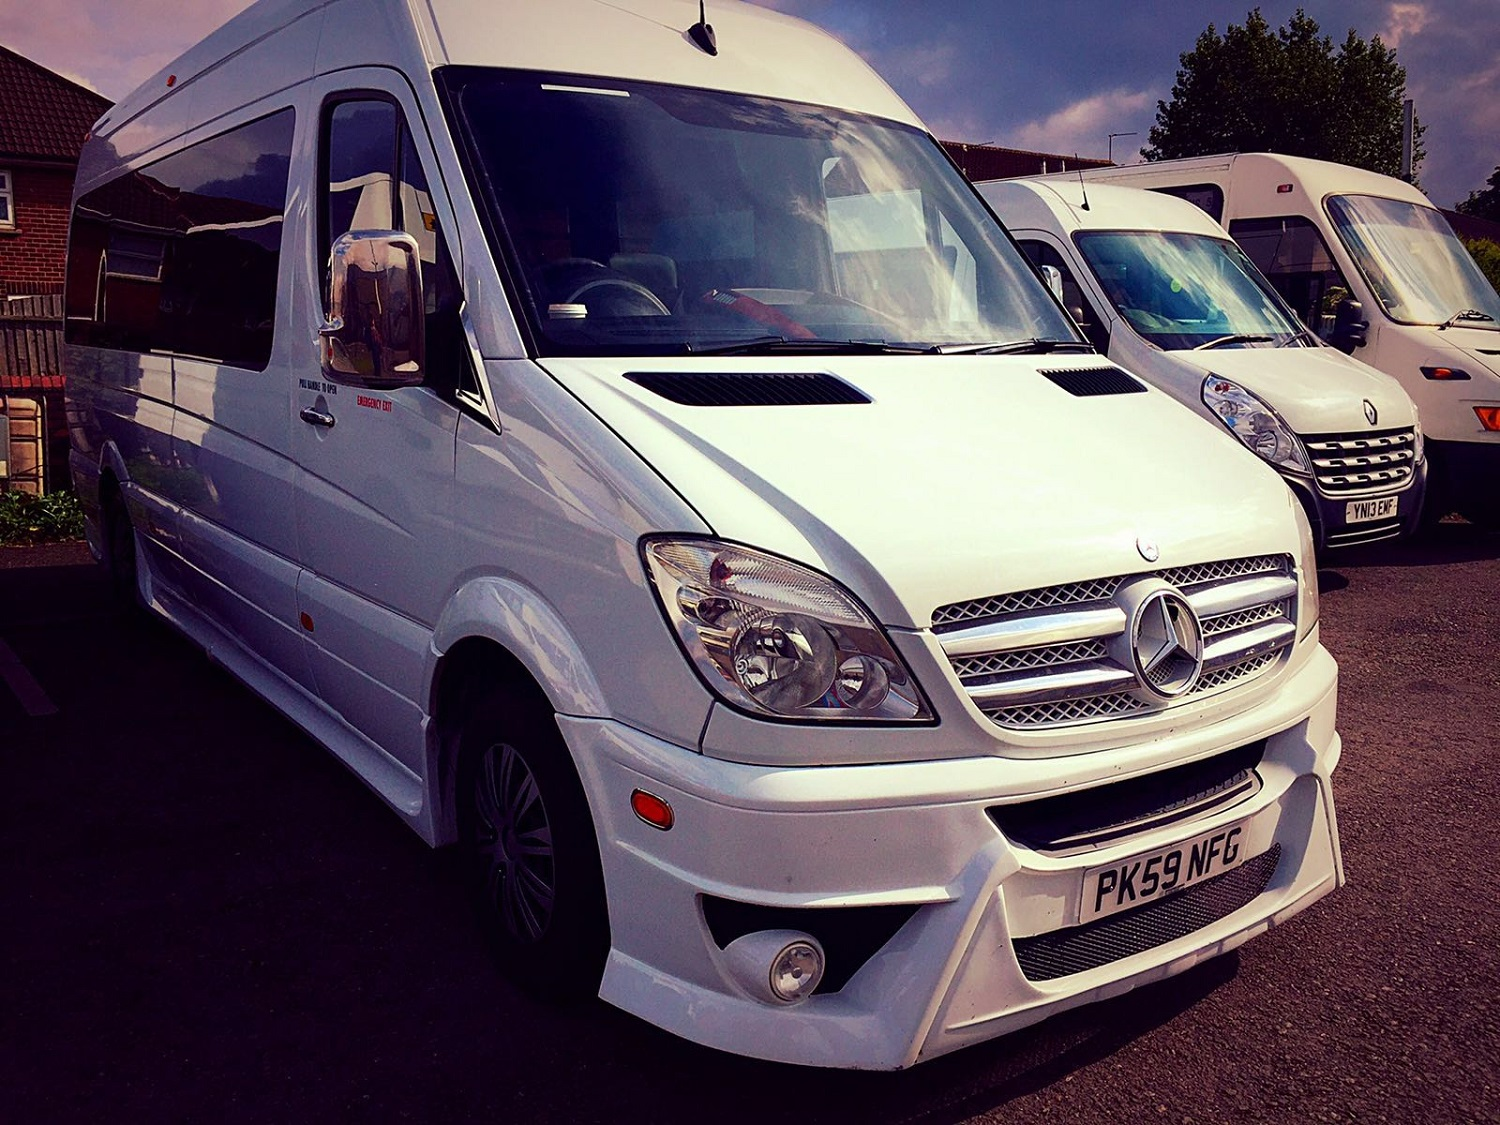 The outside of our Luxury Mercedes Sprinter 16 Seater Minibus. The minibus is white with tinted passenger windows.